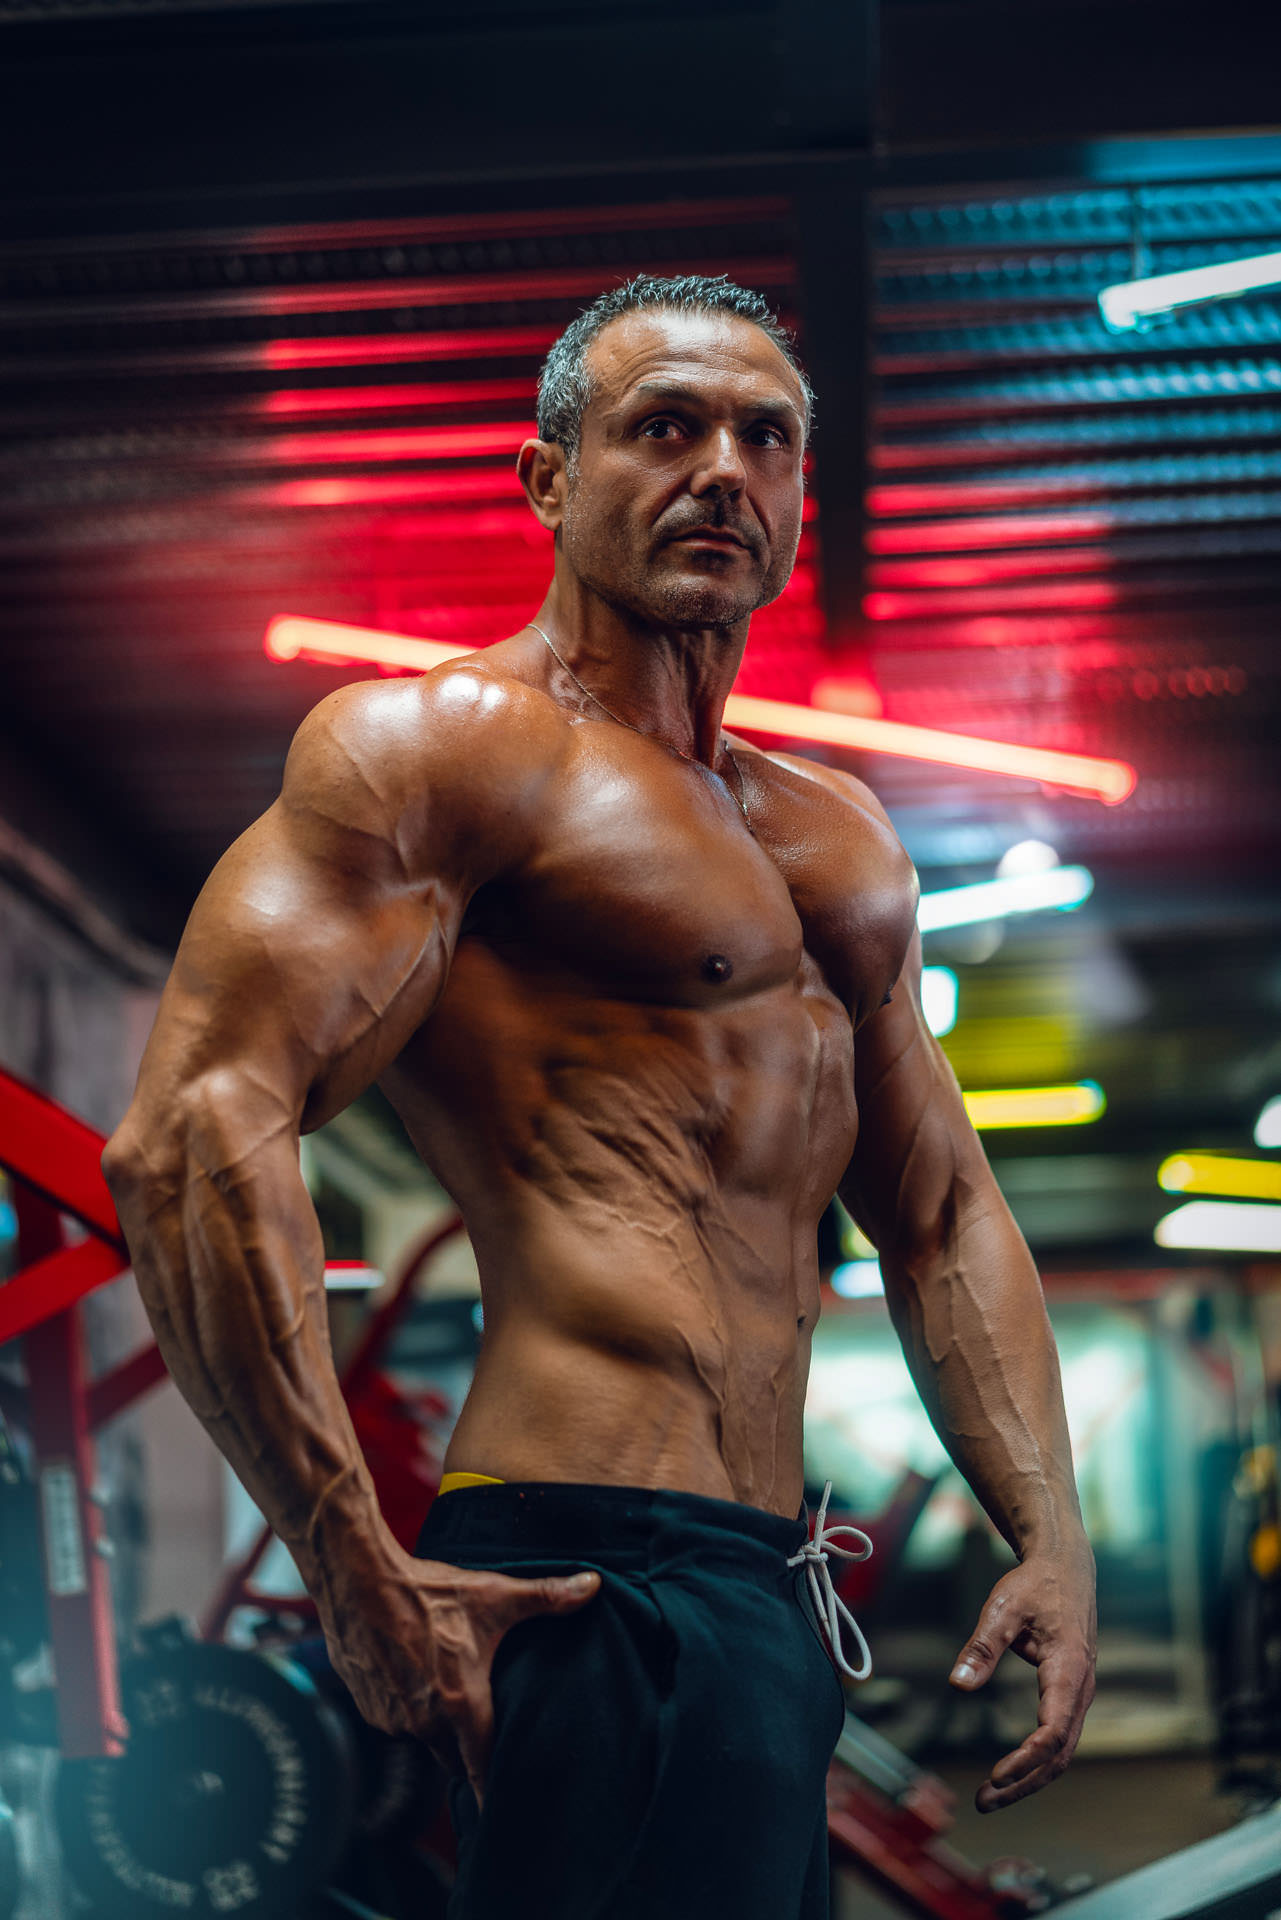 2020-03-15 - Enzo - Muscle Factory - 01555 - 1920px